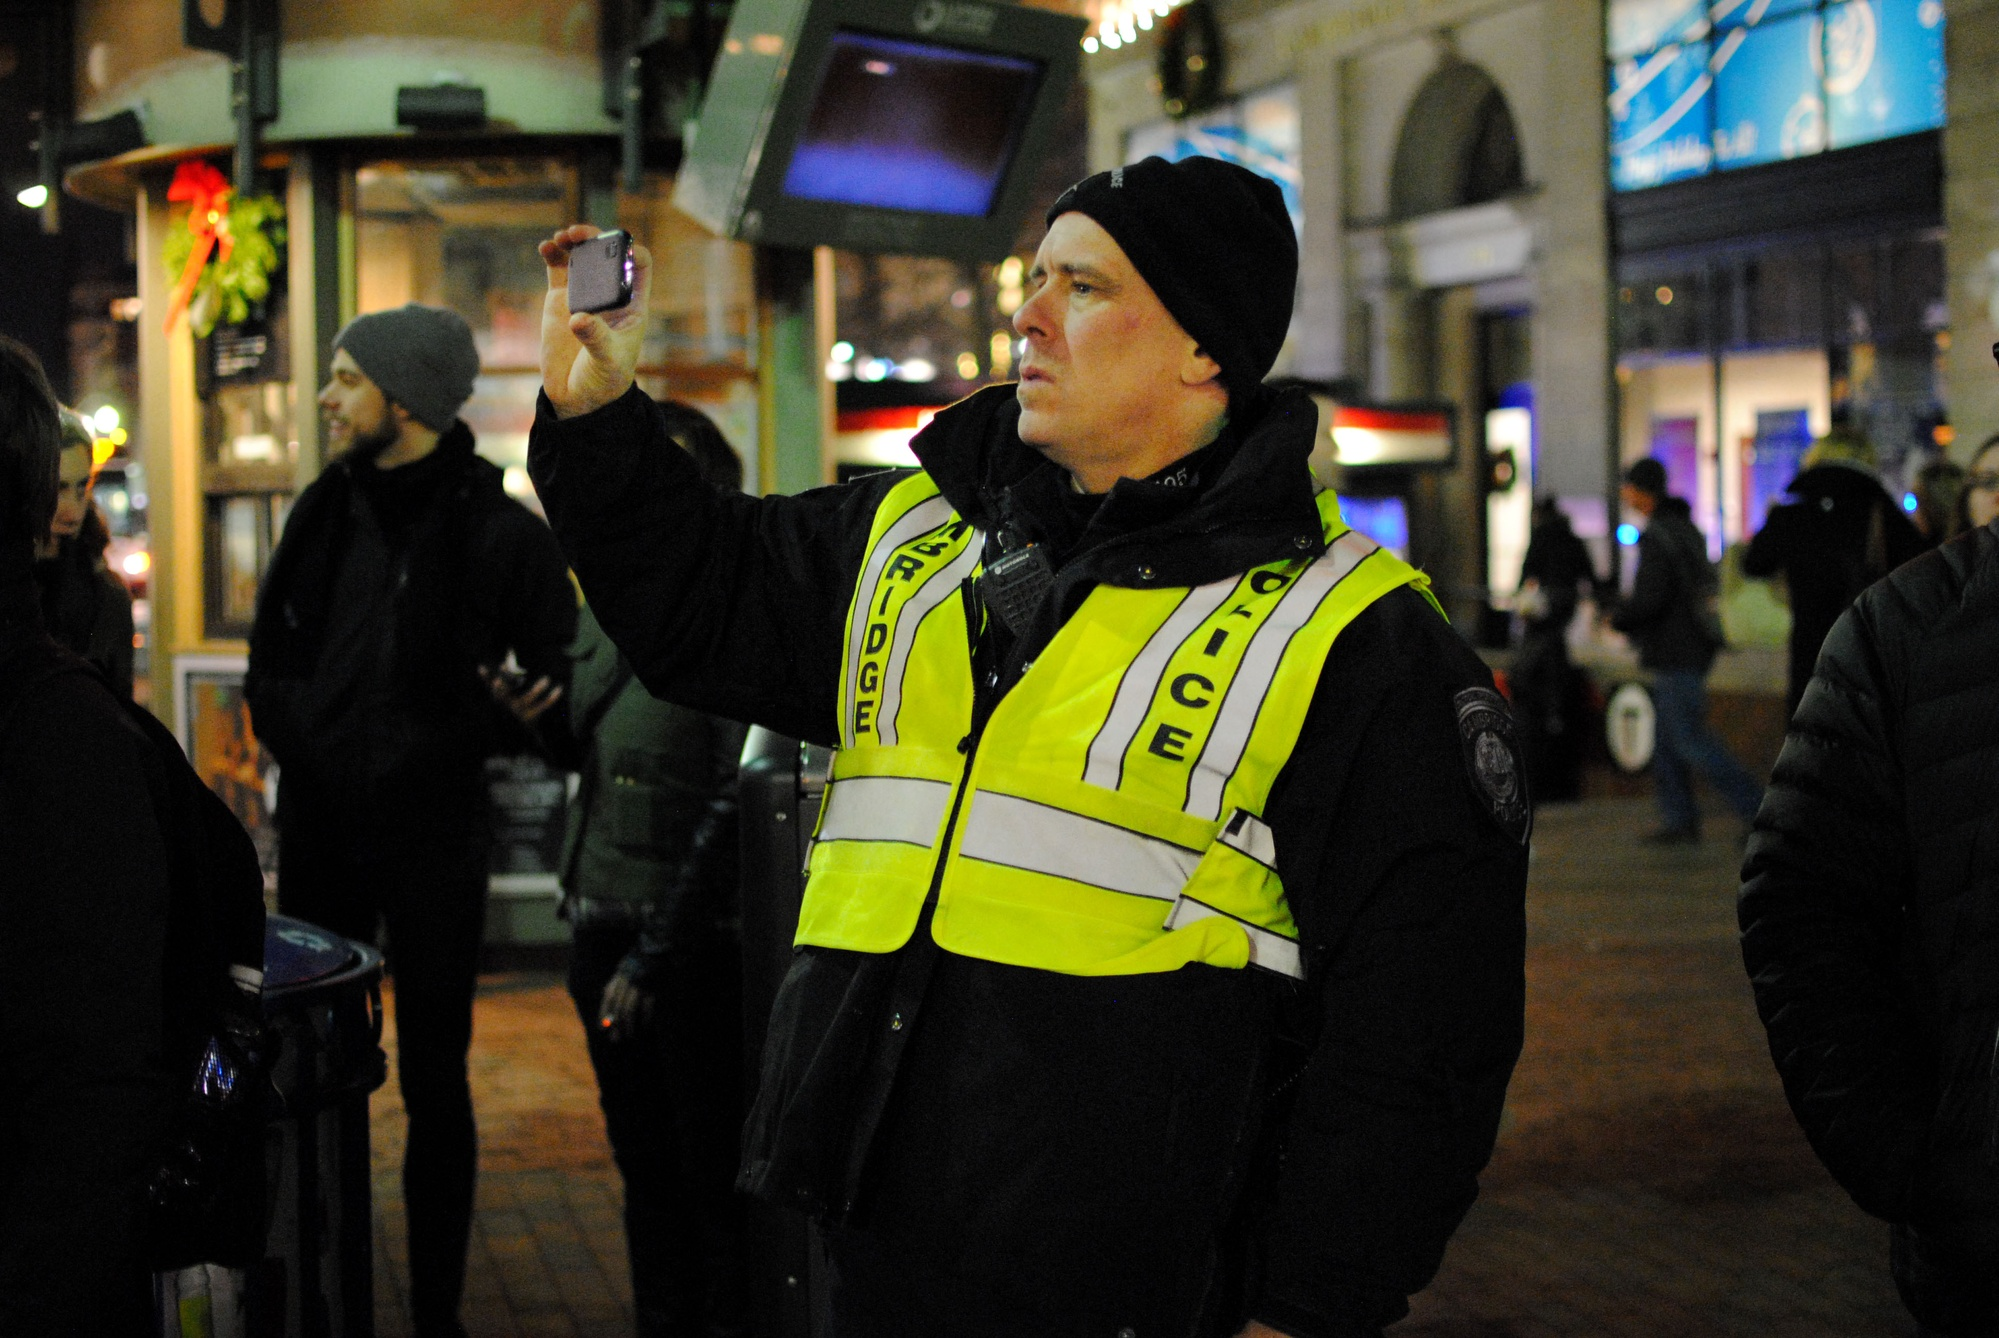 A Cambridge Police officer takes a photograph on his cellphone during a 'die in' in Harvard Square on Friday evening.